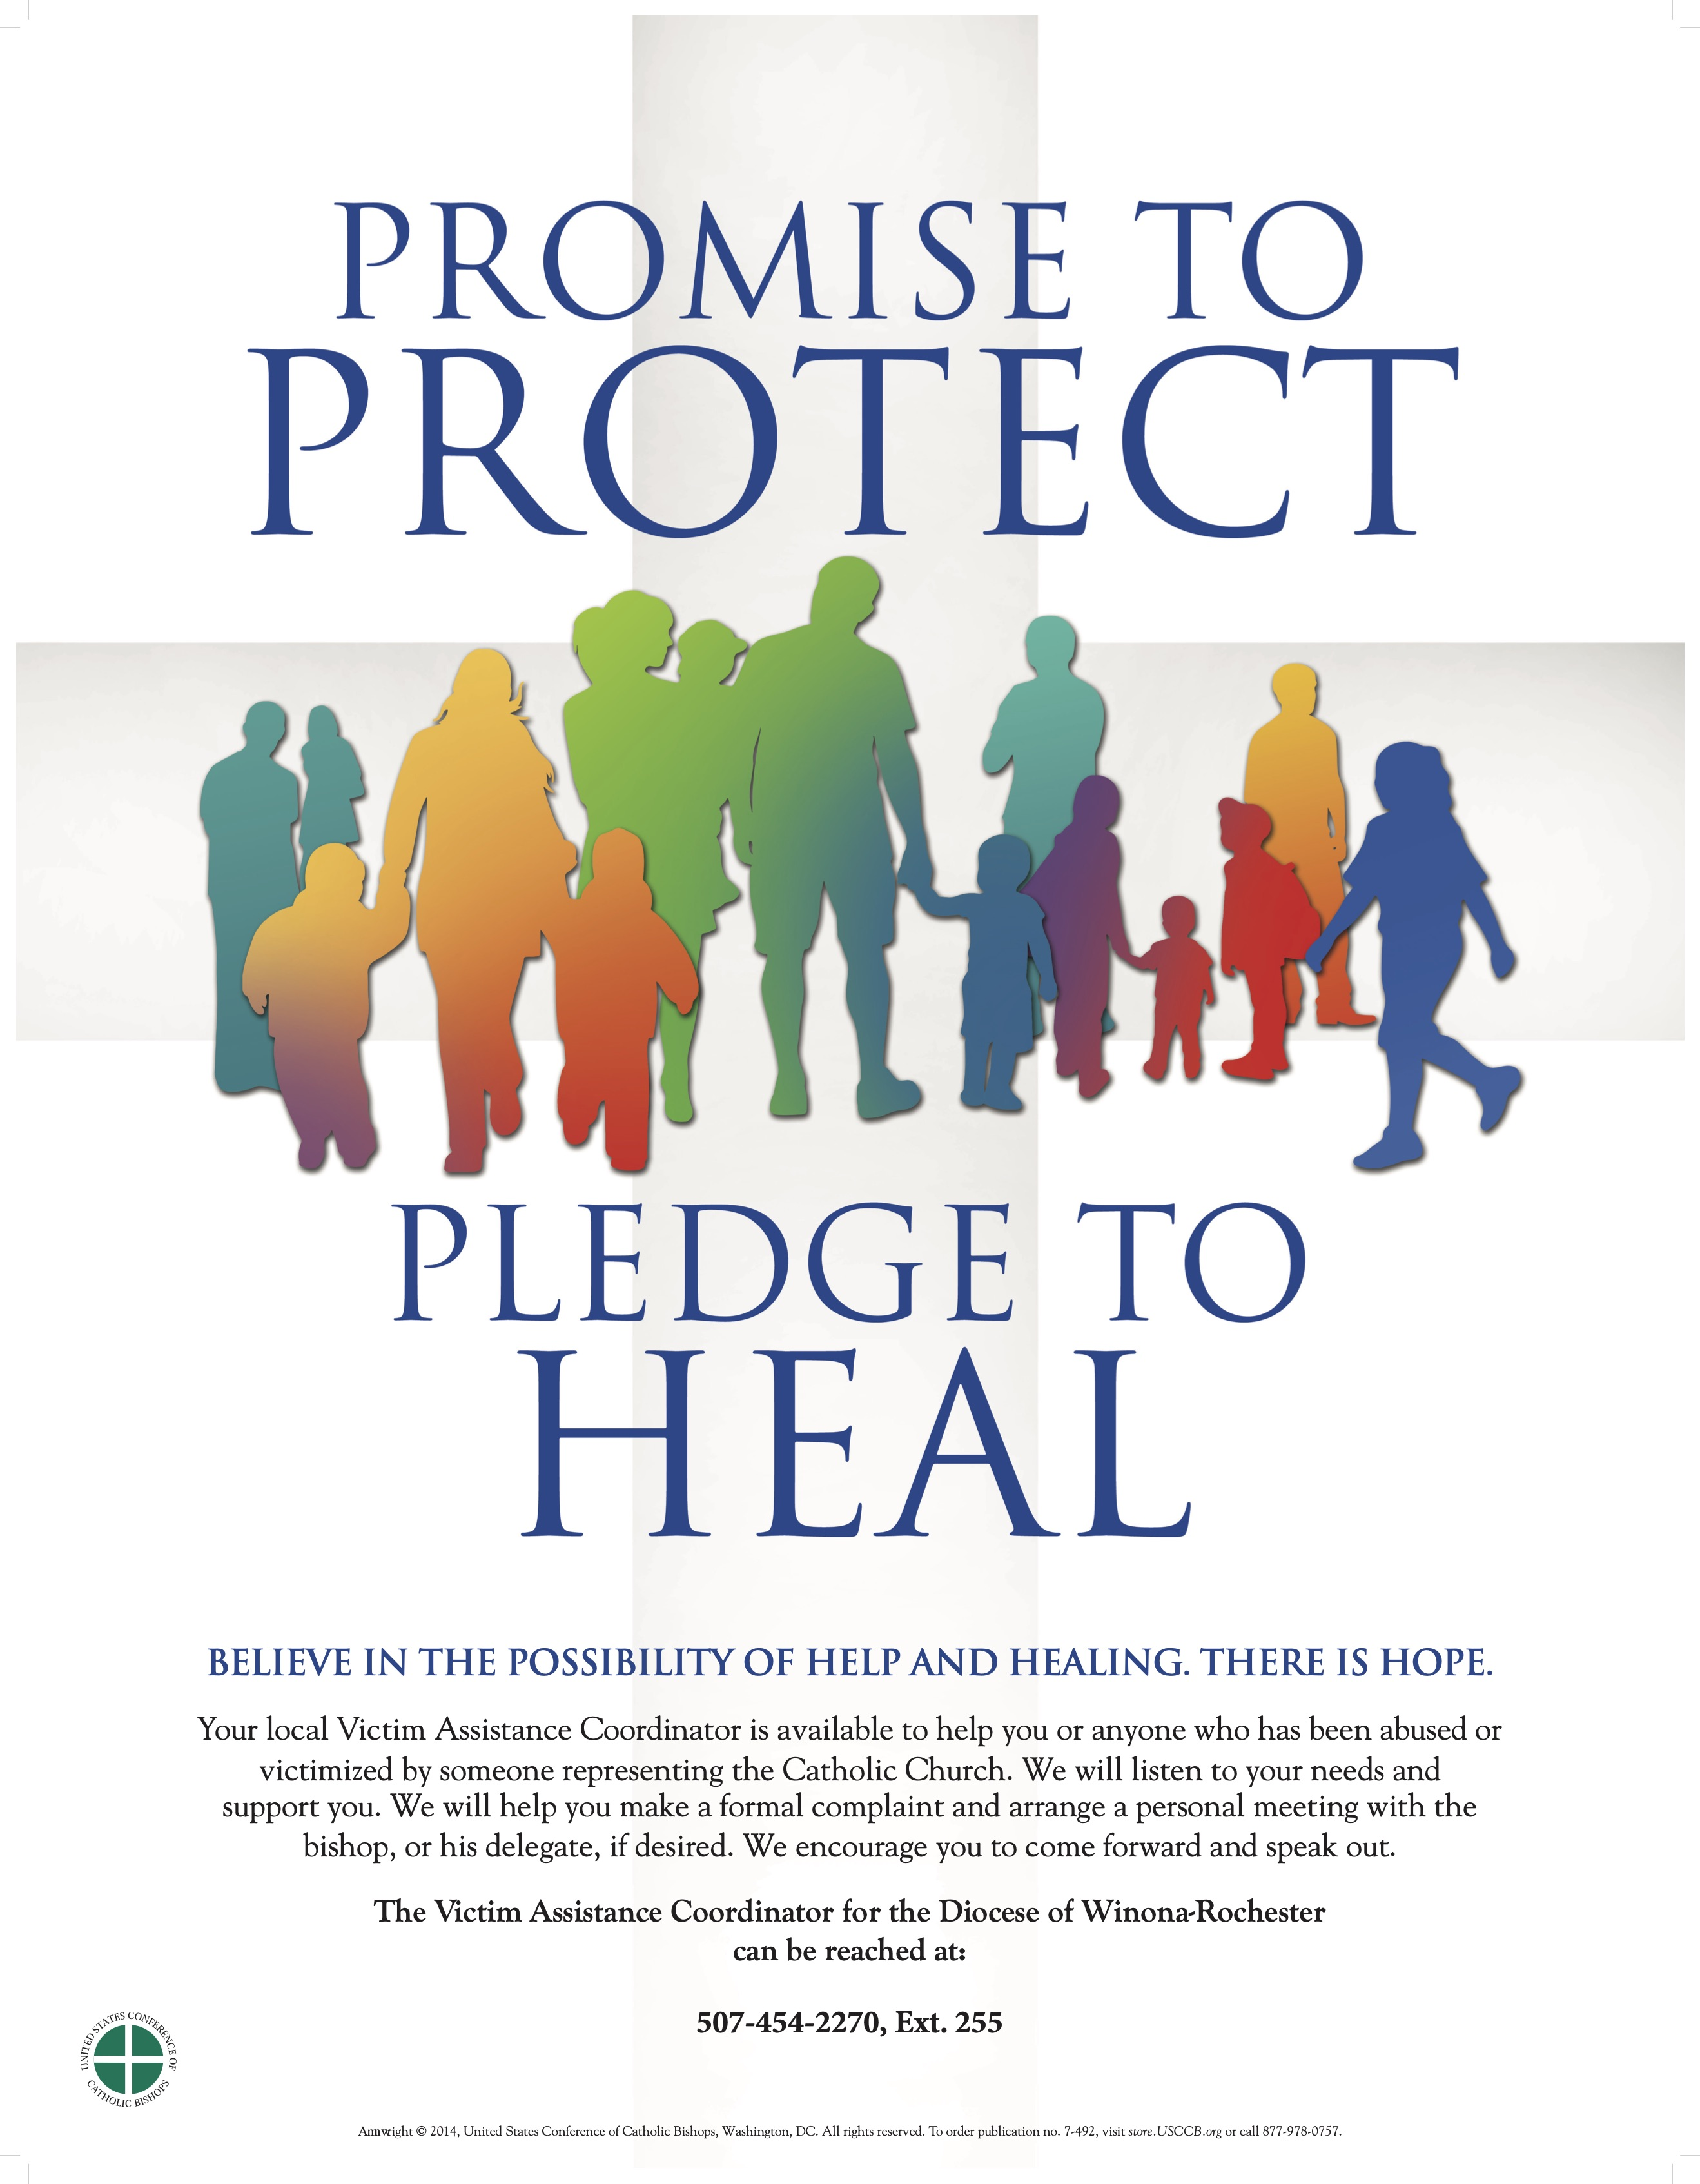 Diocese of Winona-Rochester Pledge to Heal Poster